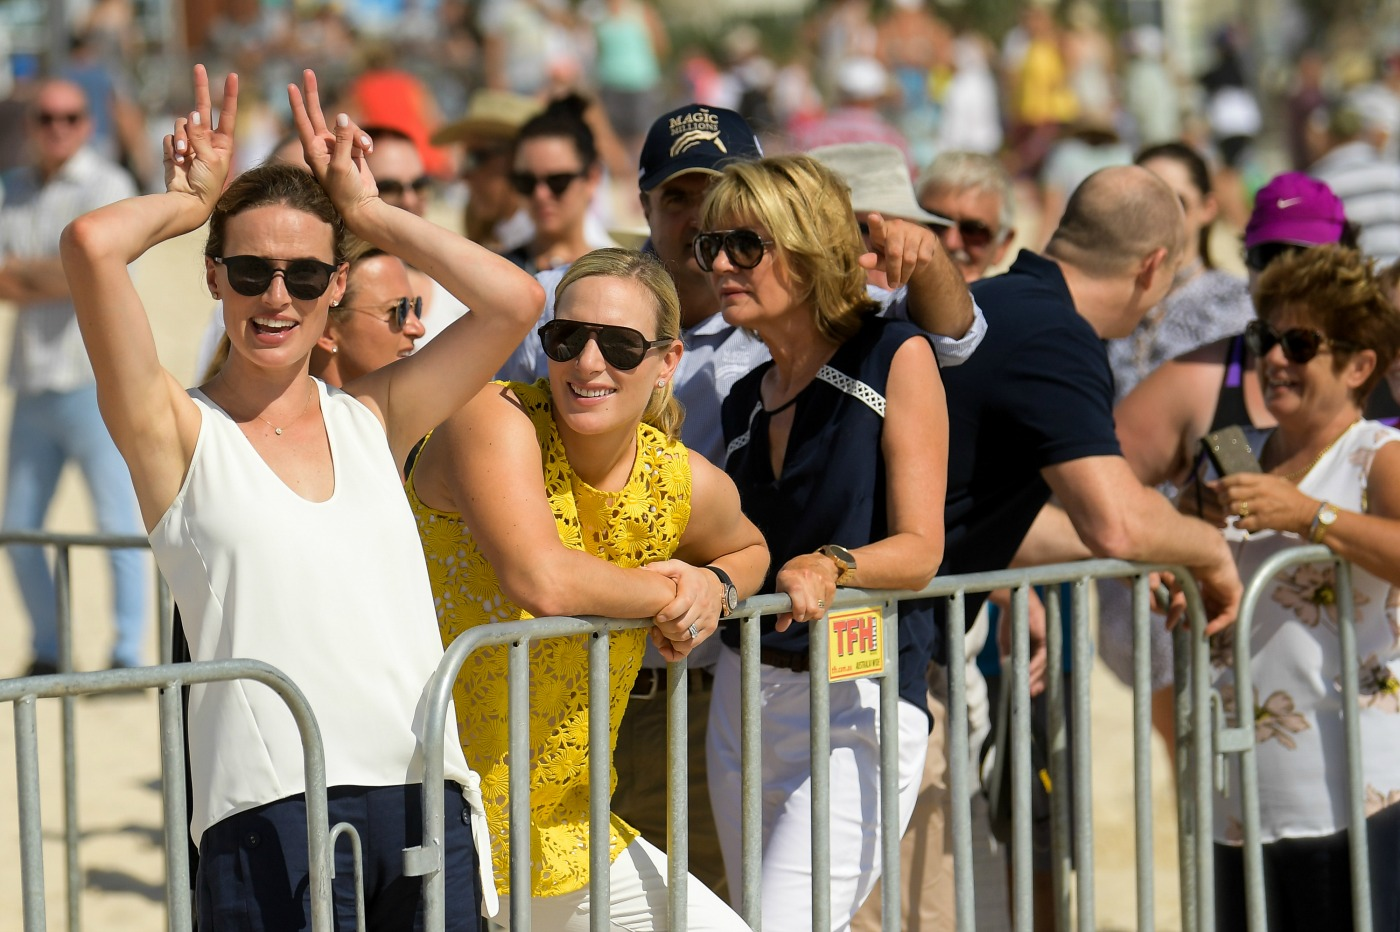 20170110-magic-millions-barrier-draw-francesca-cumani-zara-phillips-katie-page-harvey-photo-ken-butti0093